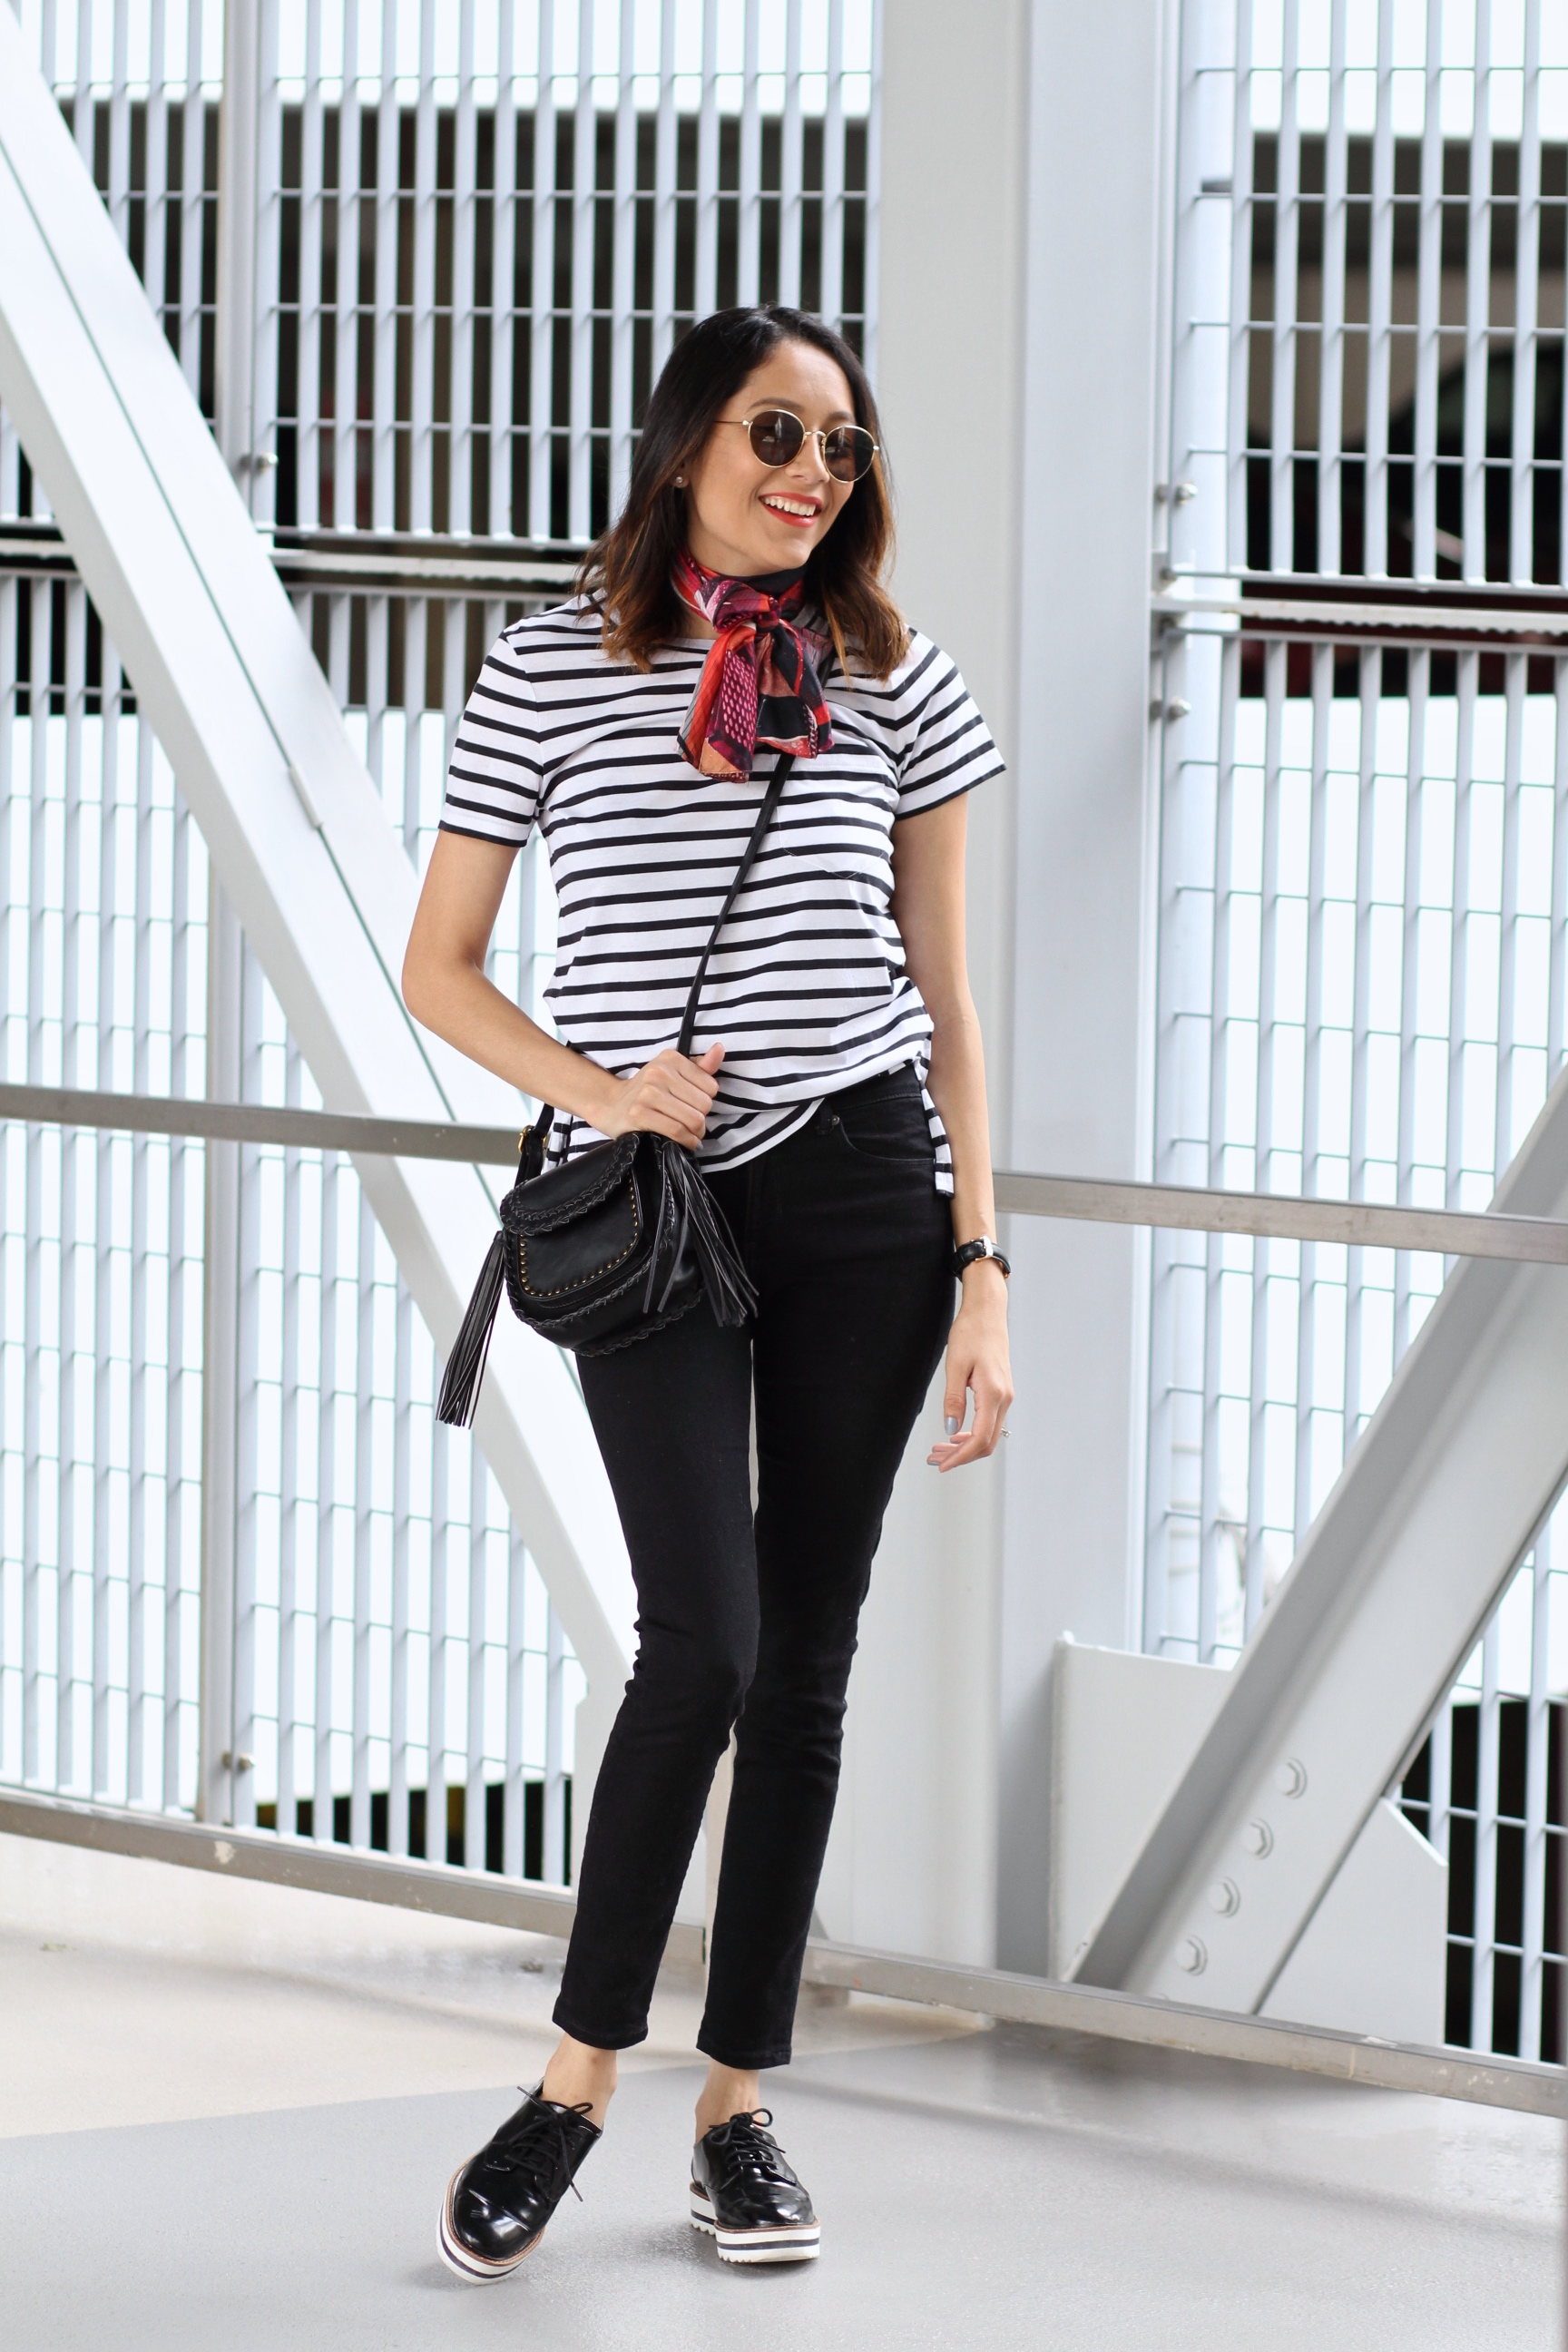 Lilly Beltran from Daily Craving wearing black skinny jeans and round sunglasses